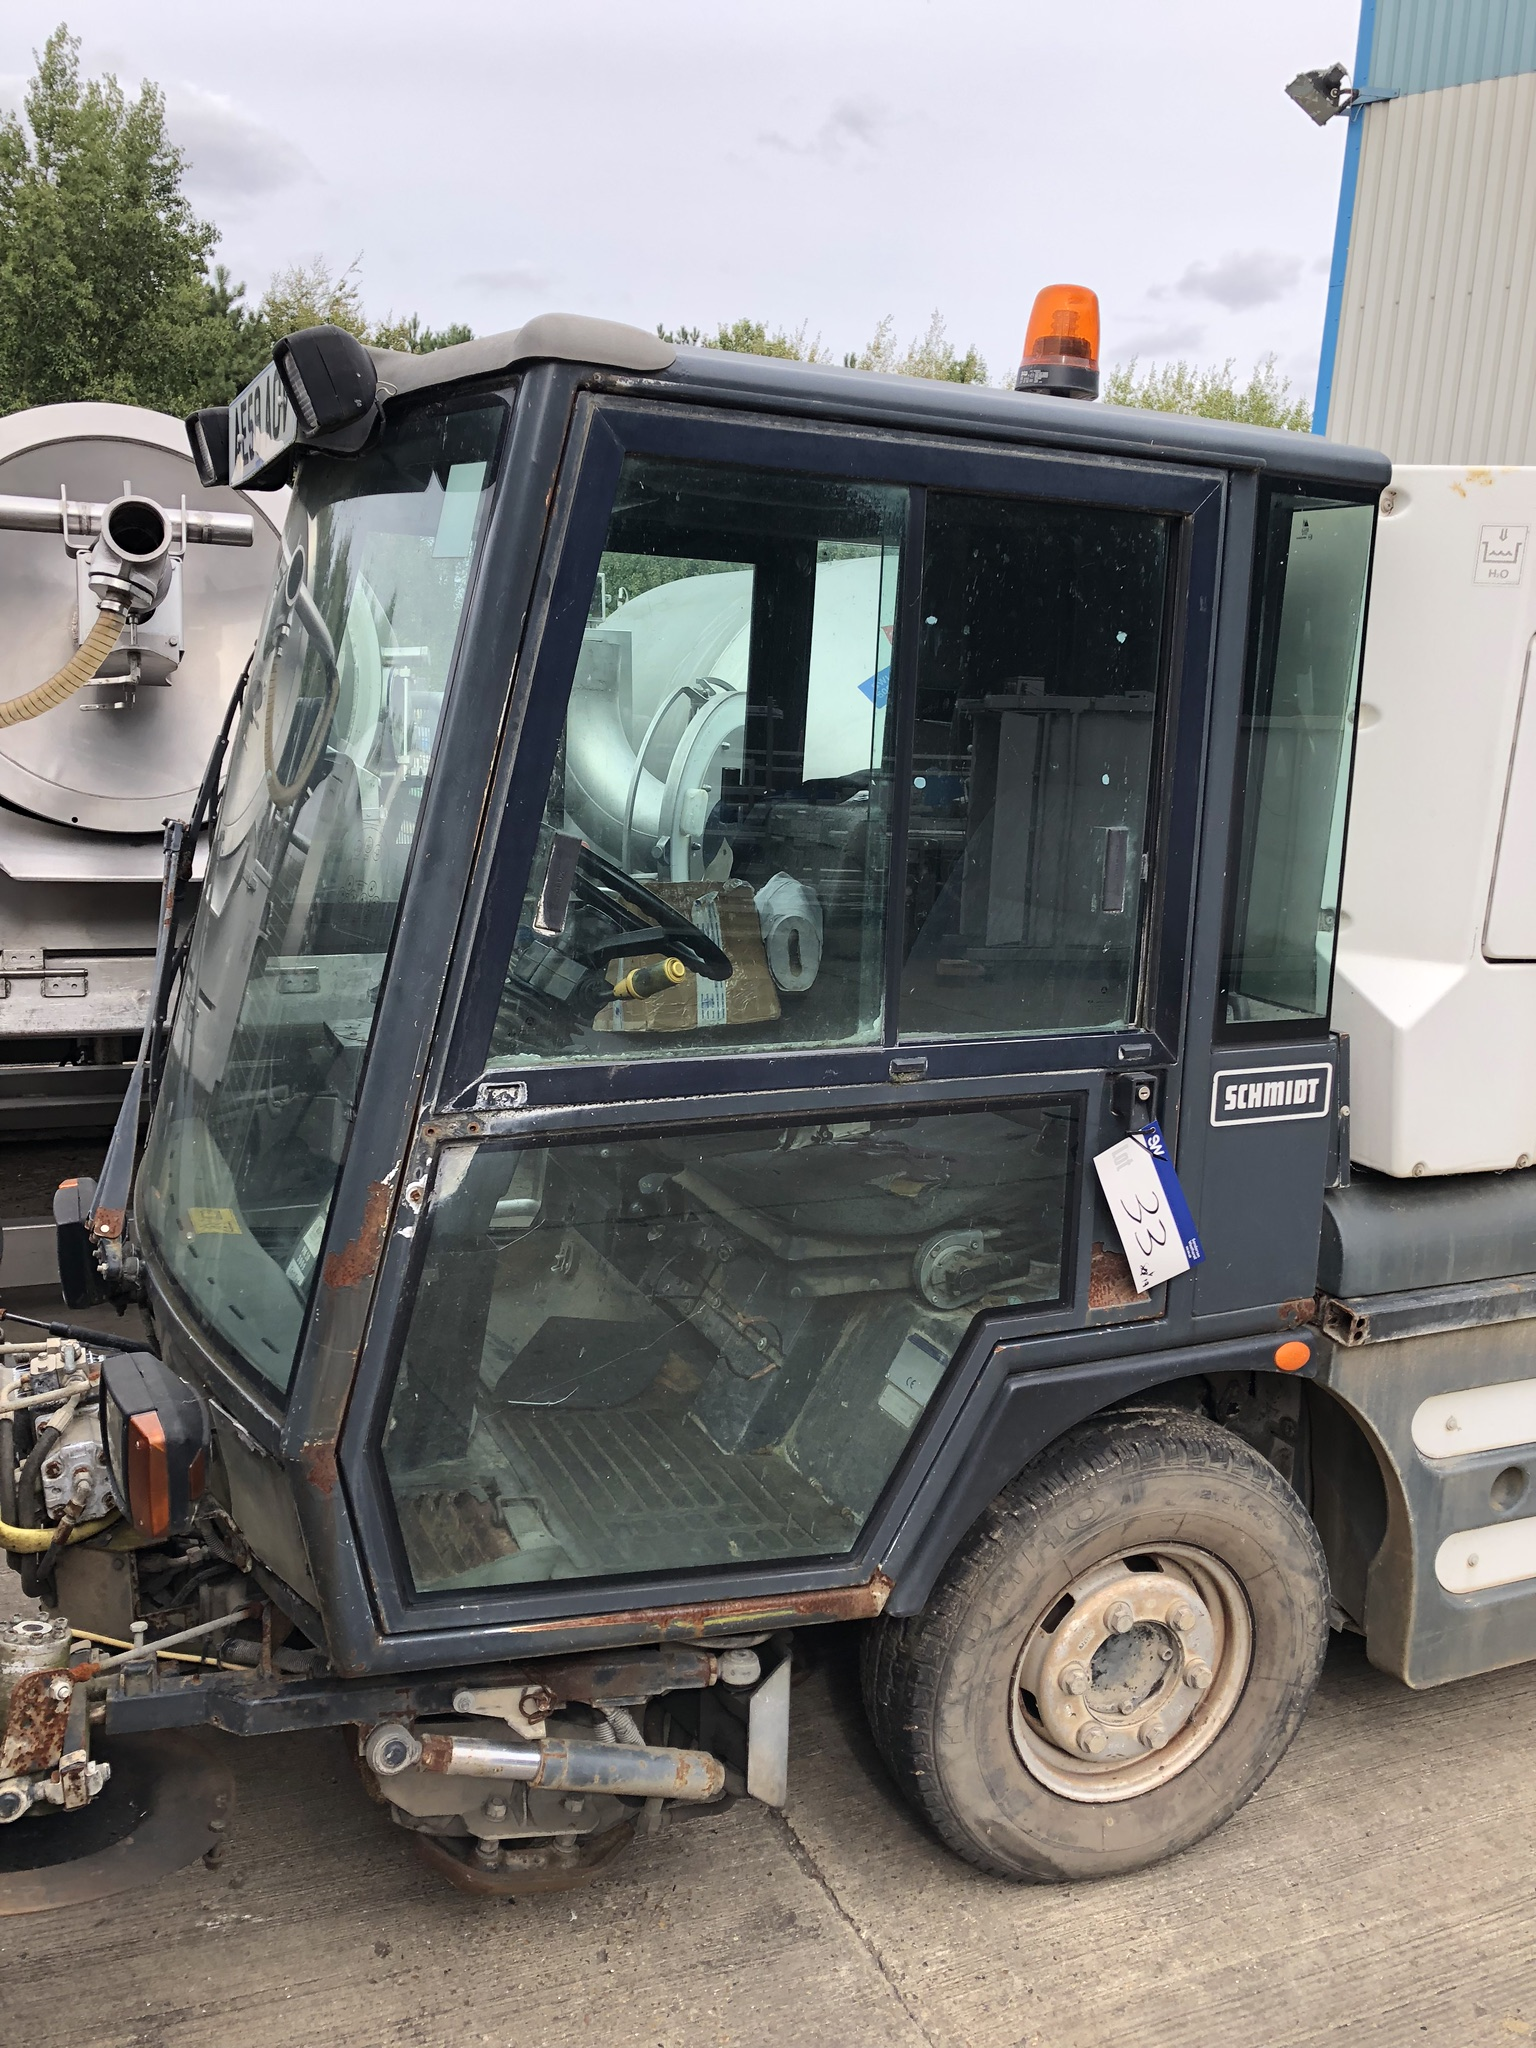 Schmidt Swingo 200 Road Sweeper, registration no. AE59 AOV (understood to require attention - non- - Image 3 of 3